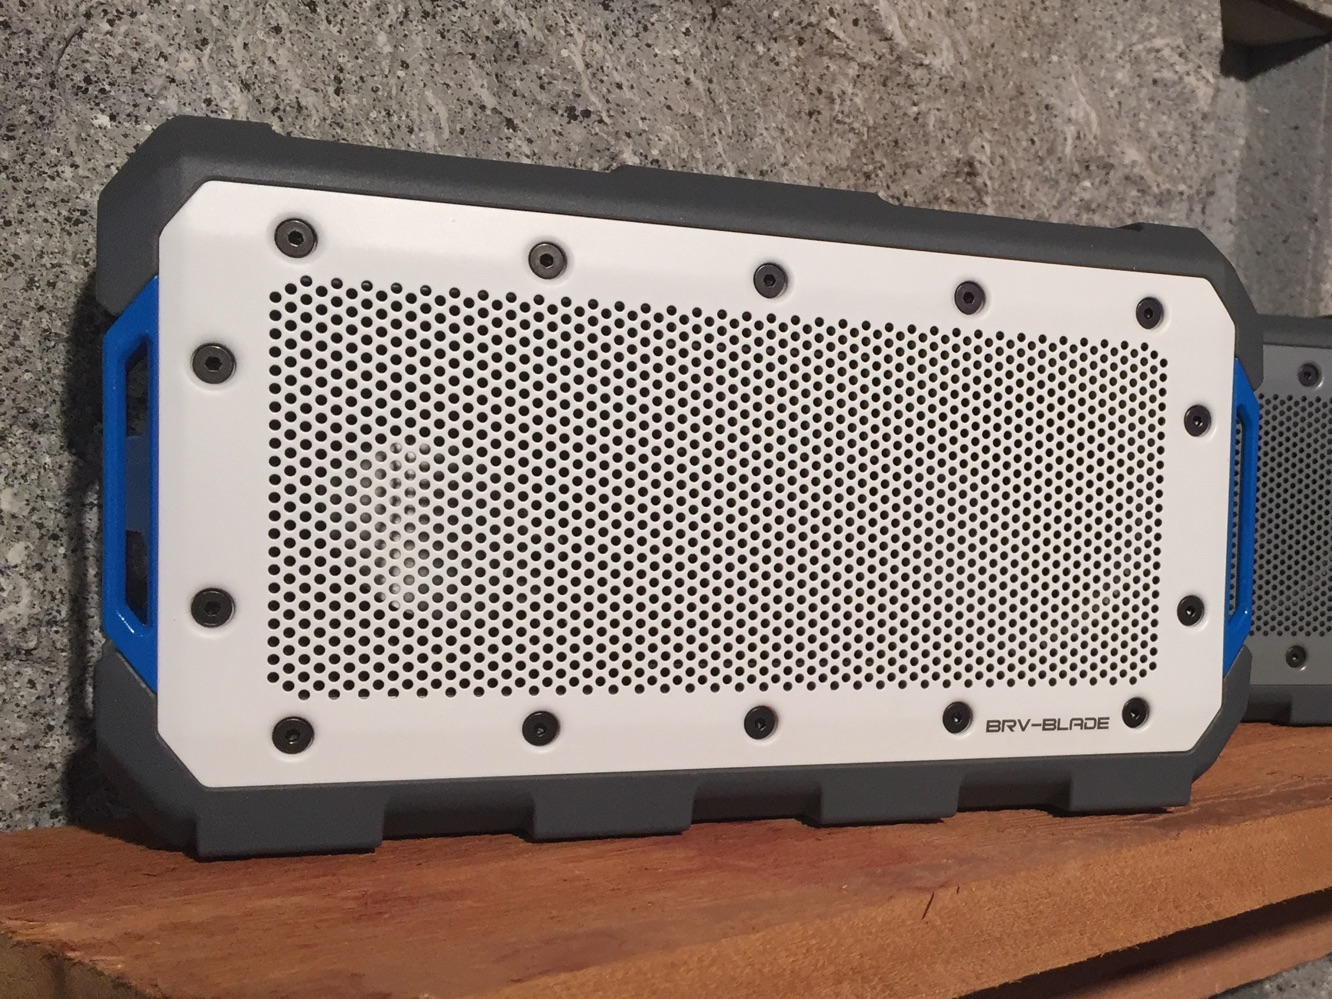 Braven intros new speakers at CES, including the BRV-XXL and BRV-BLADE LE 7